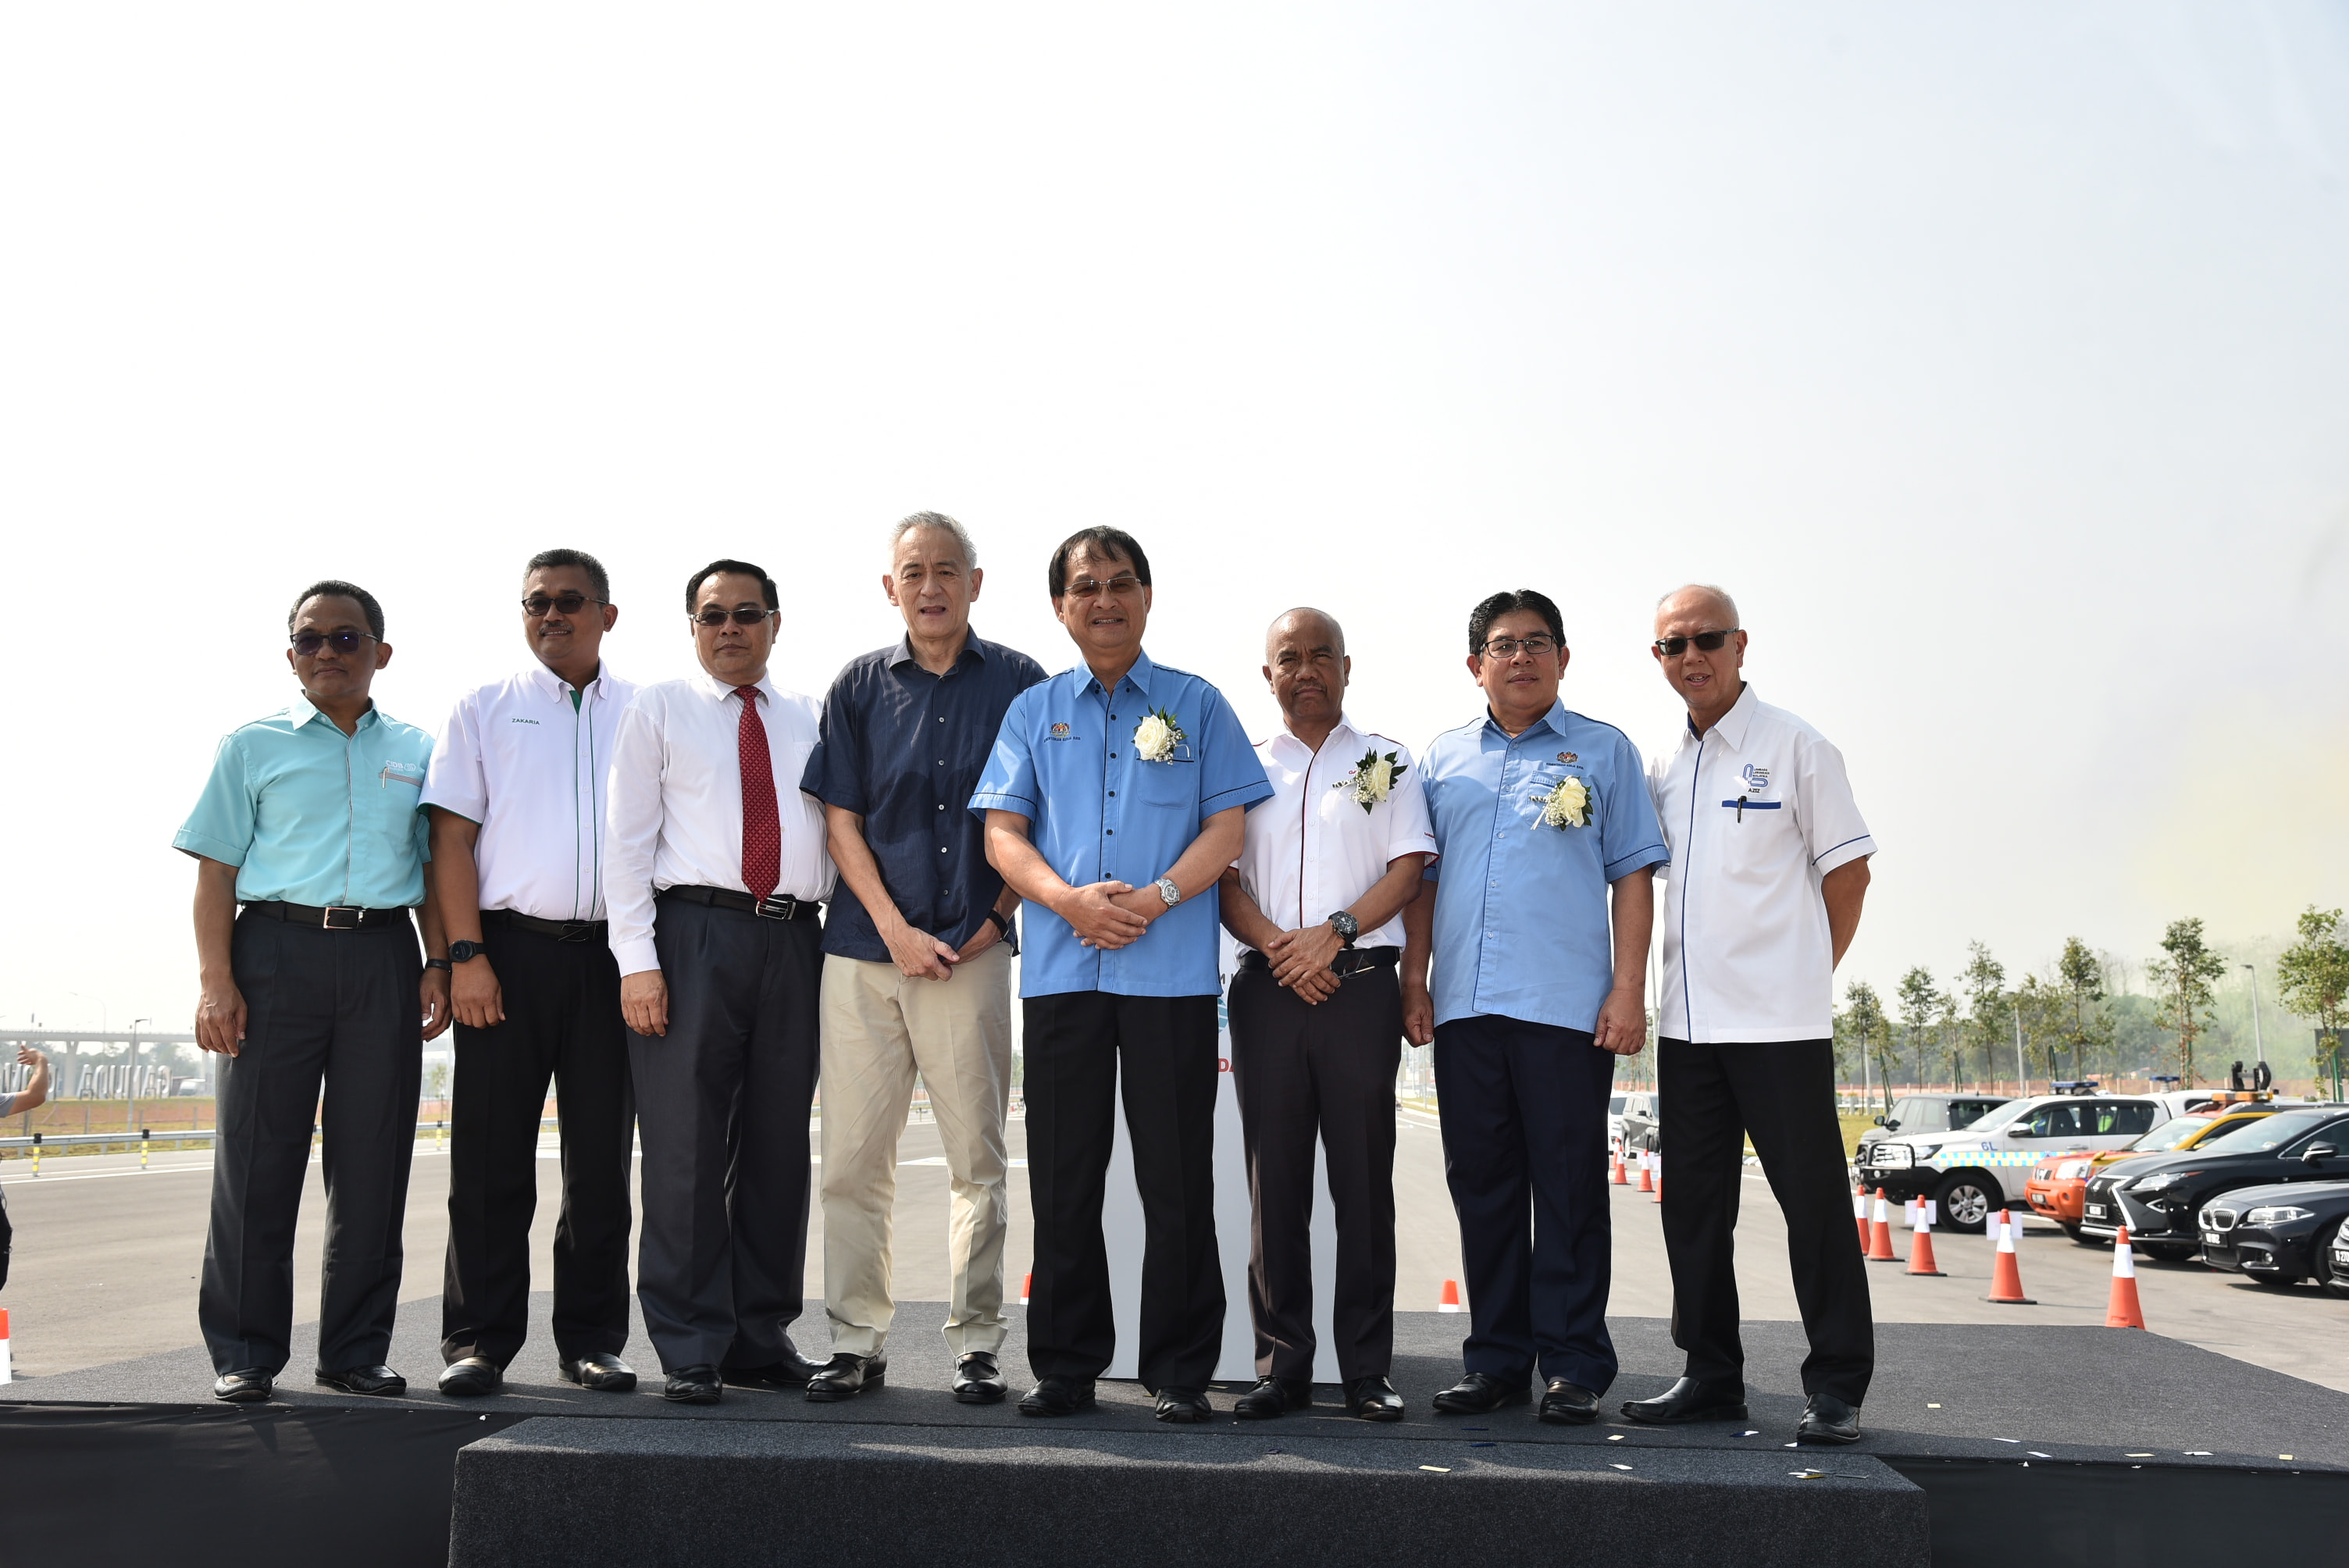 Gamuda Bhd Group Director, Executive Director and other officials.